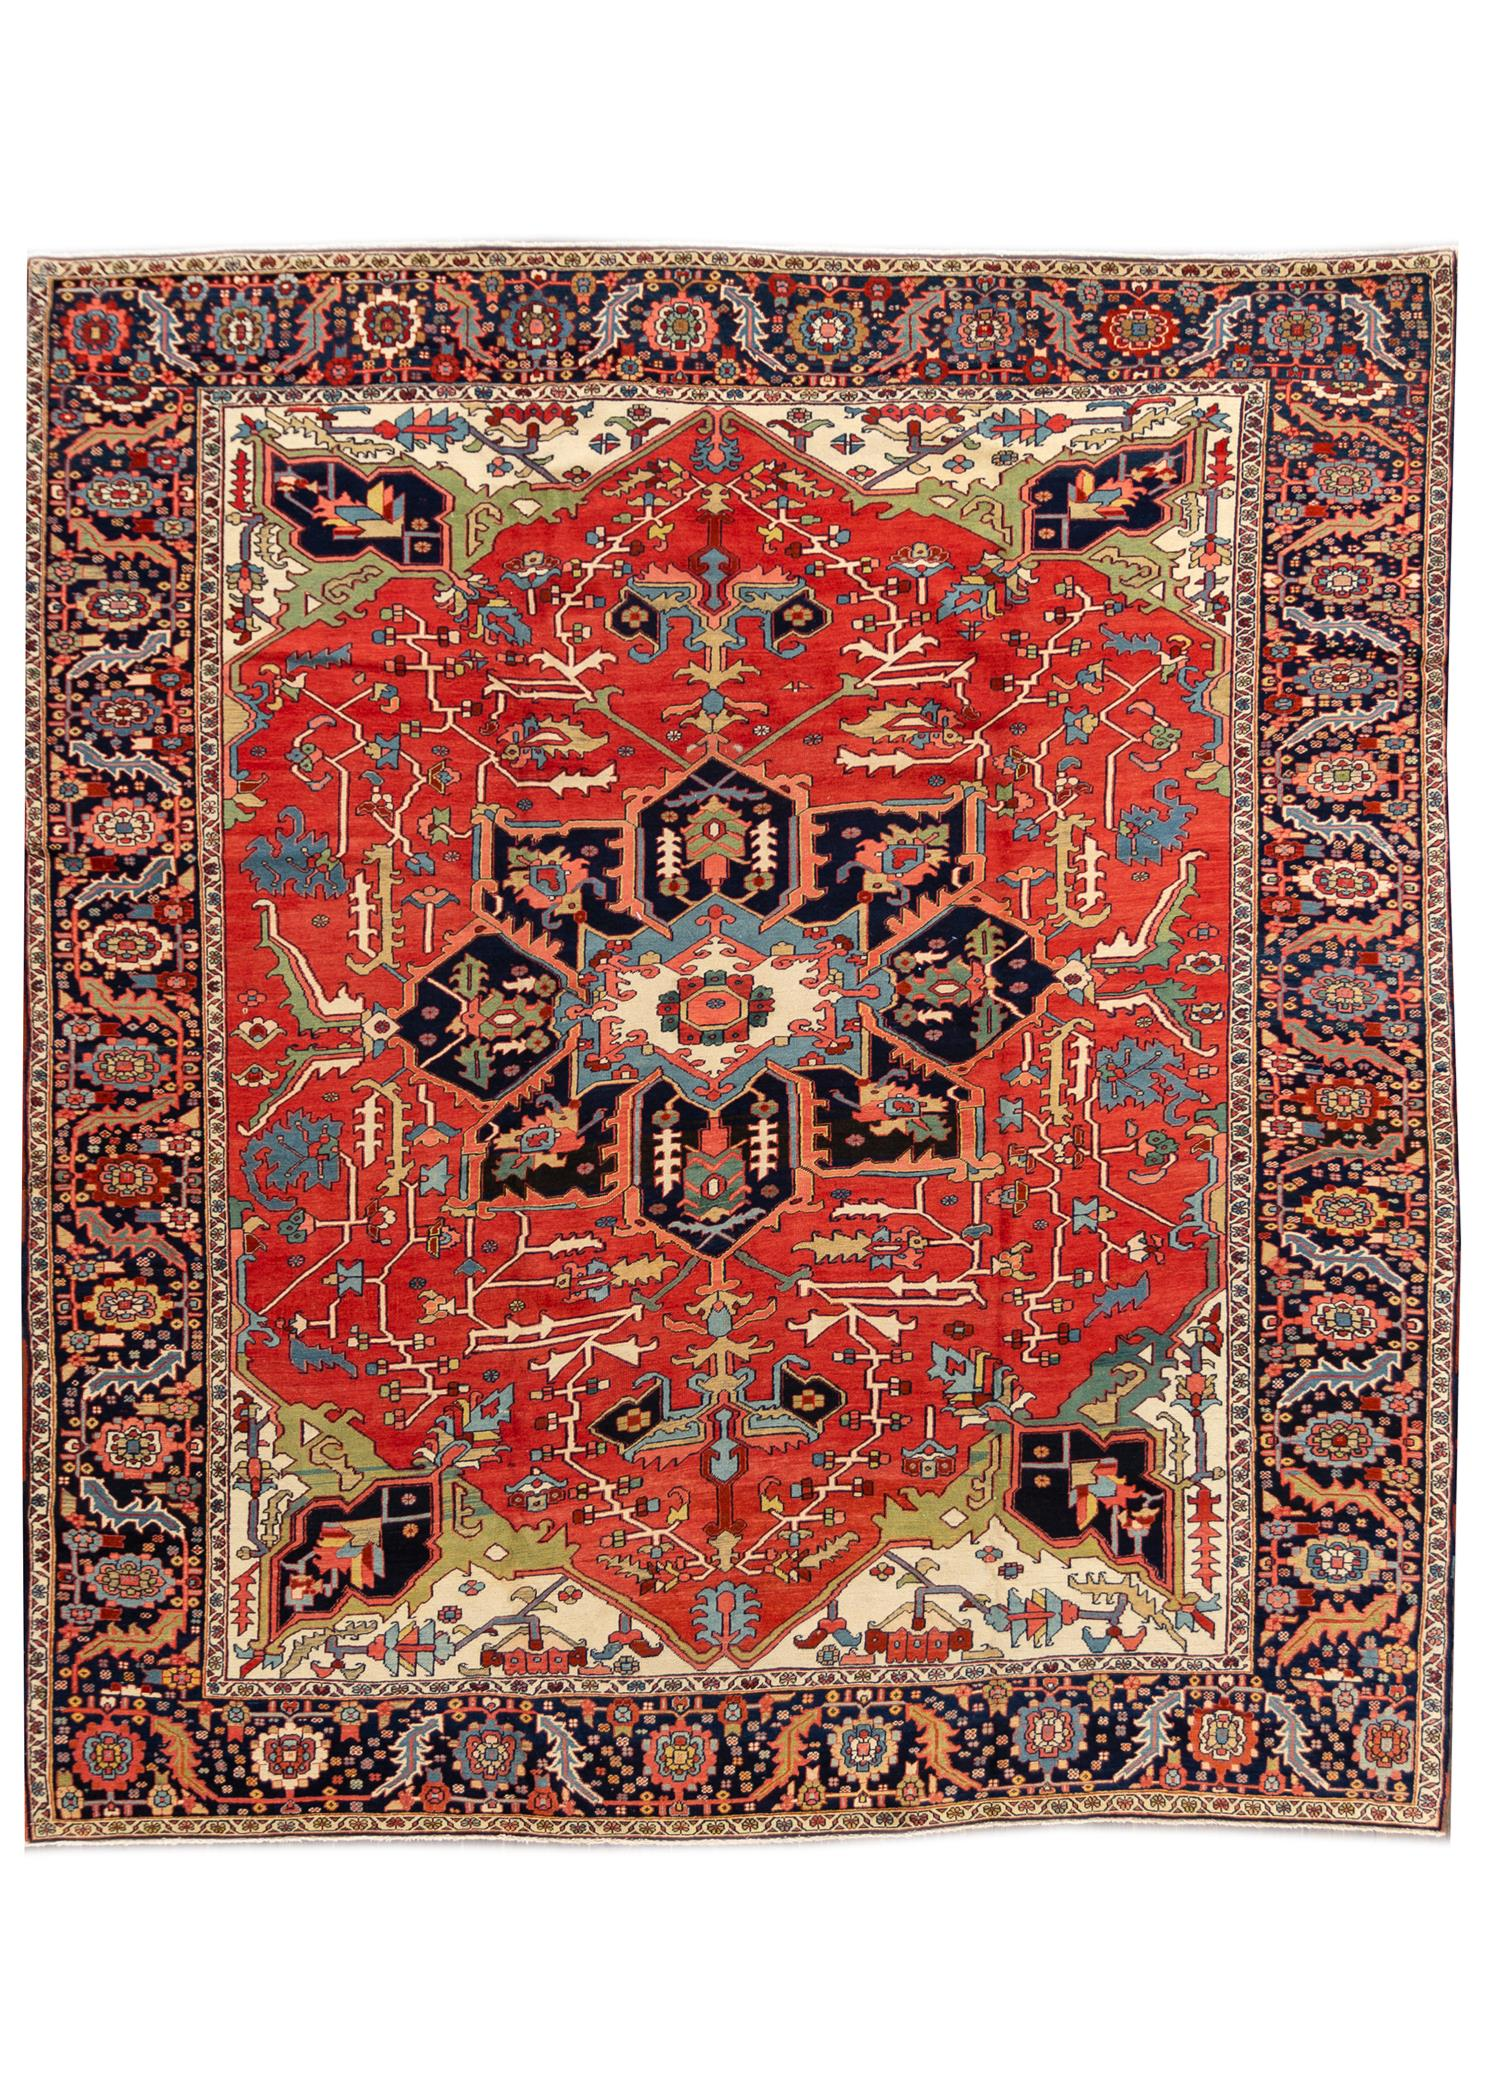 19th Century Antique Serapi Rug, 10X10